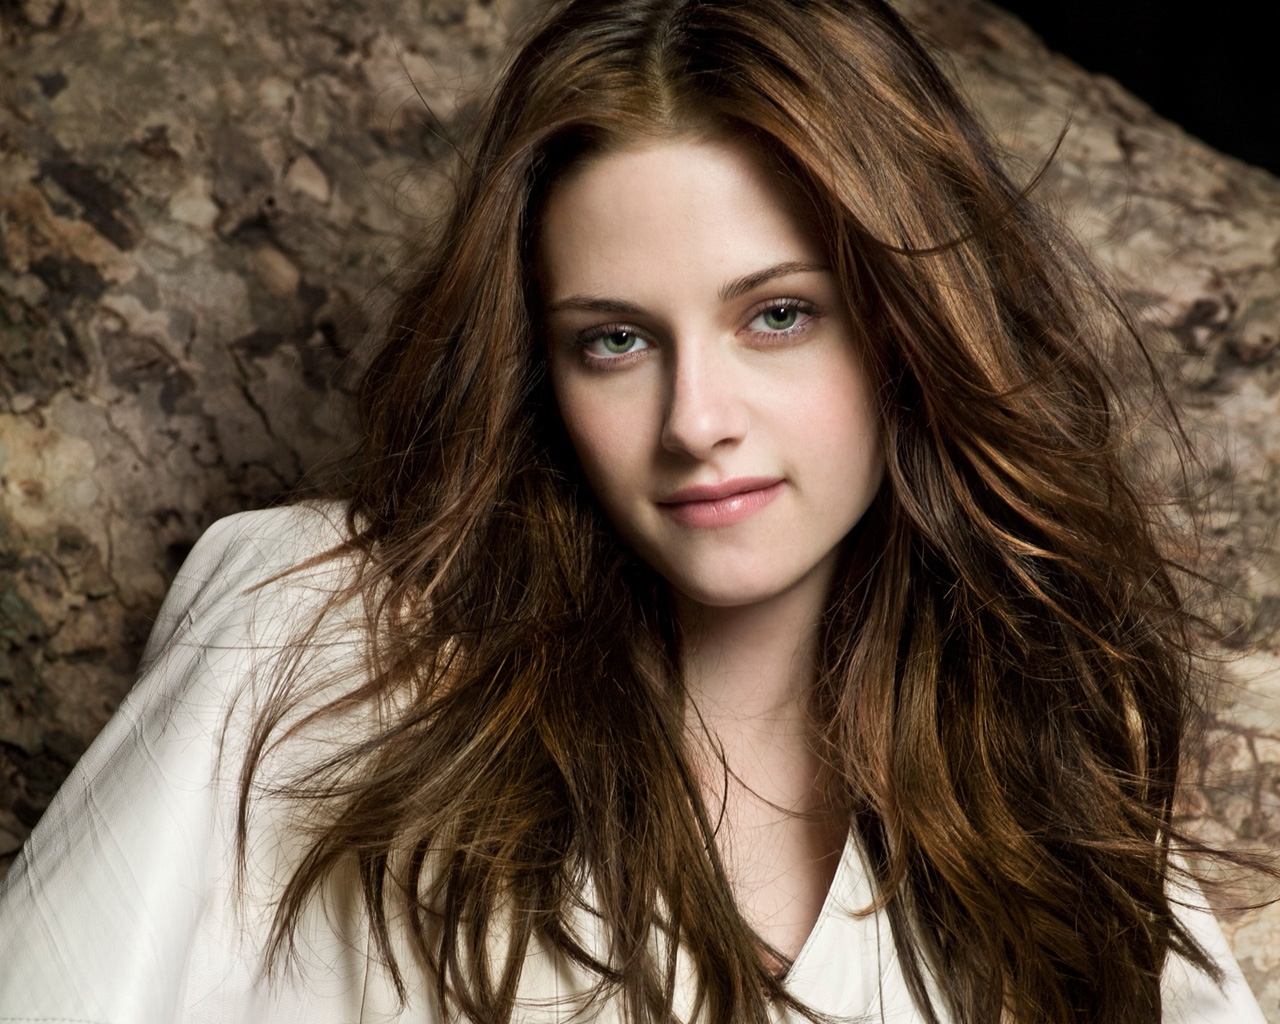 Kristen Stewart Twilight Girl 190.06 Kb